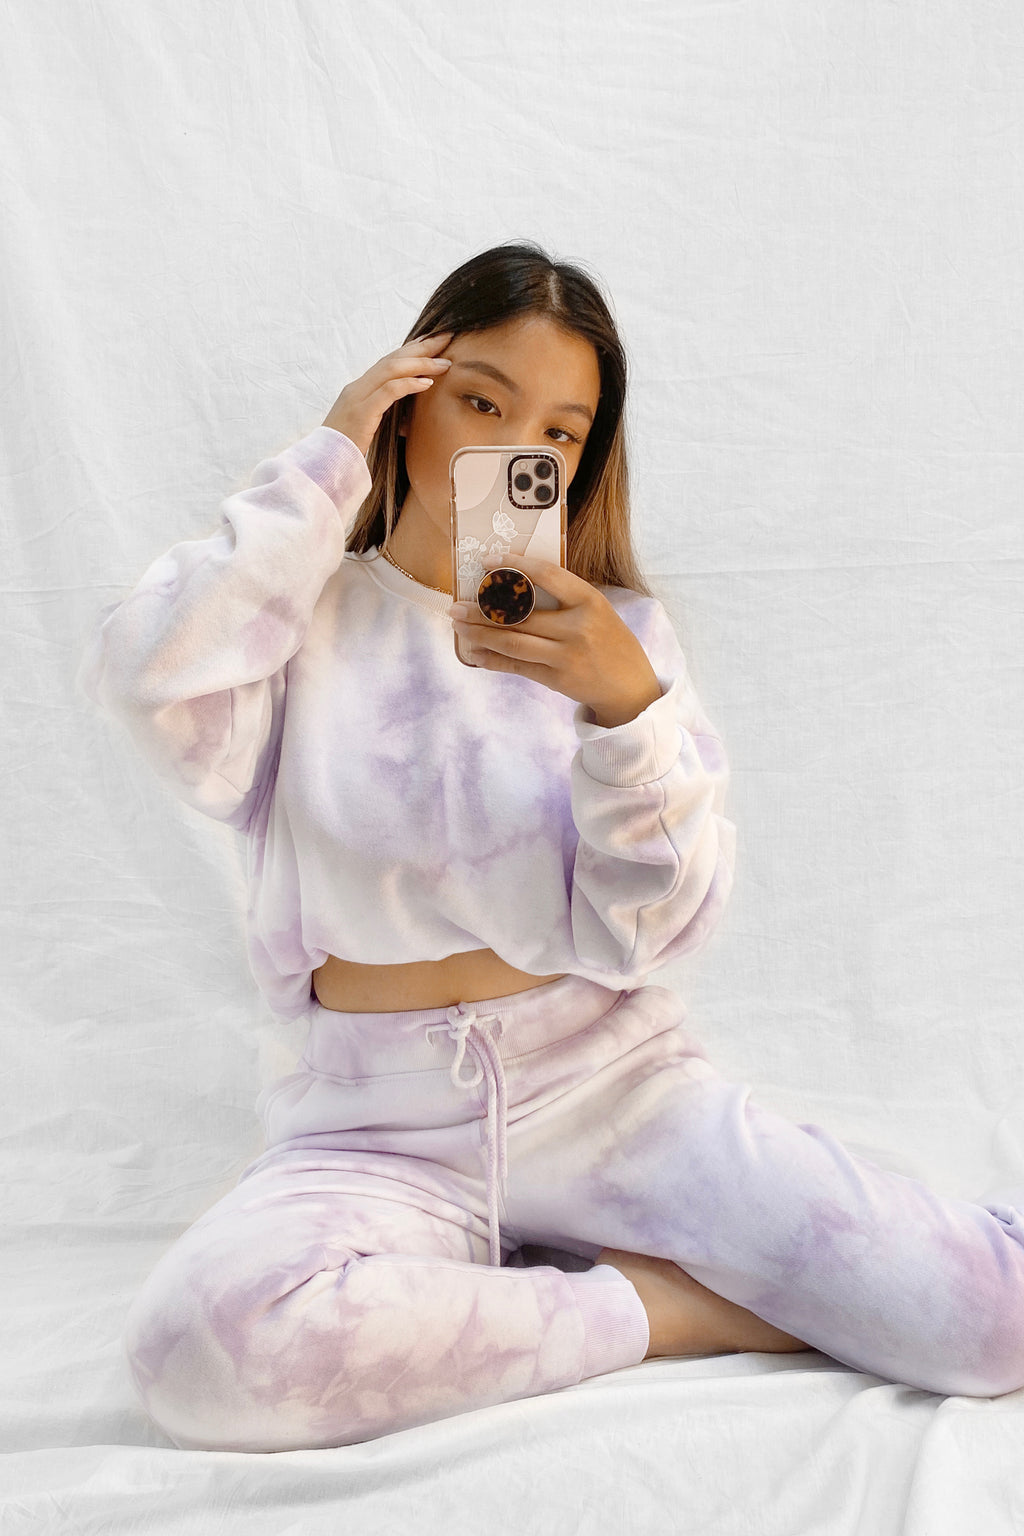 wild rina wildrina.com purple lavender tie dye set sweatpants jogggers sweats sweatshirt sweater crewneck